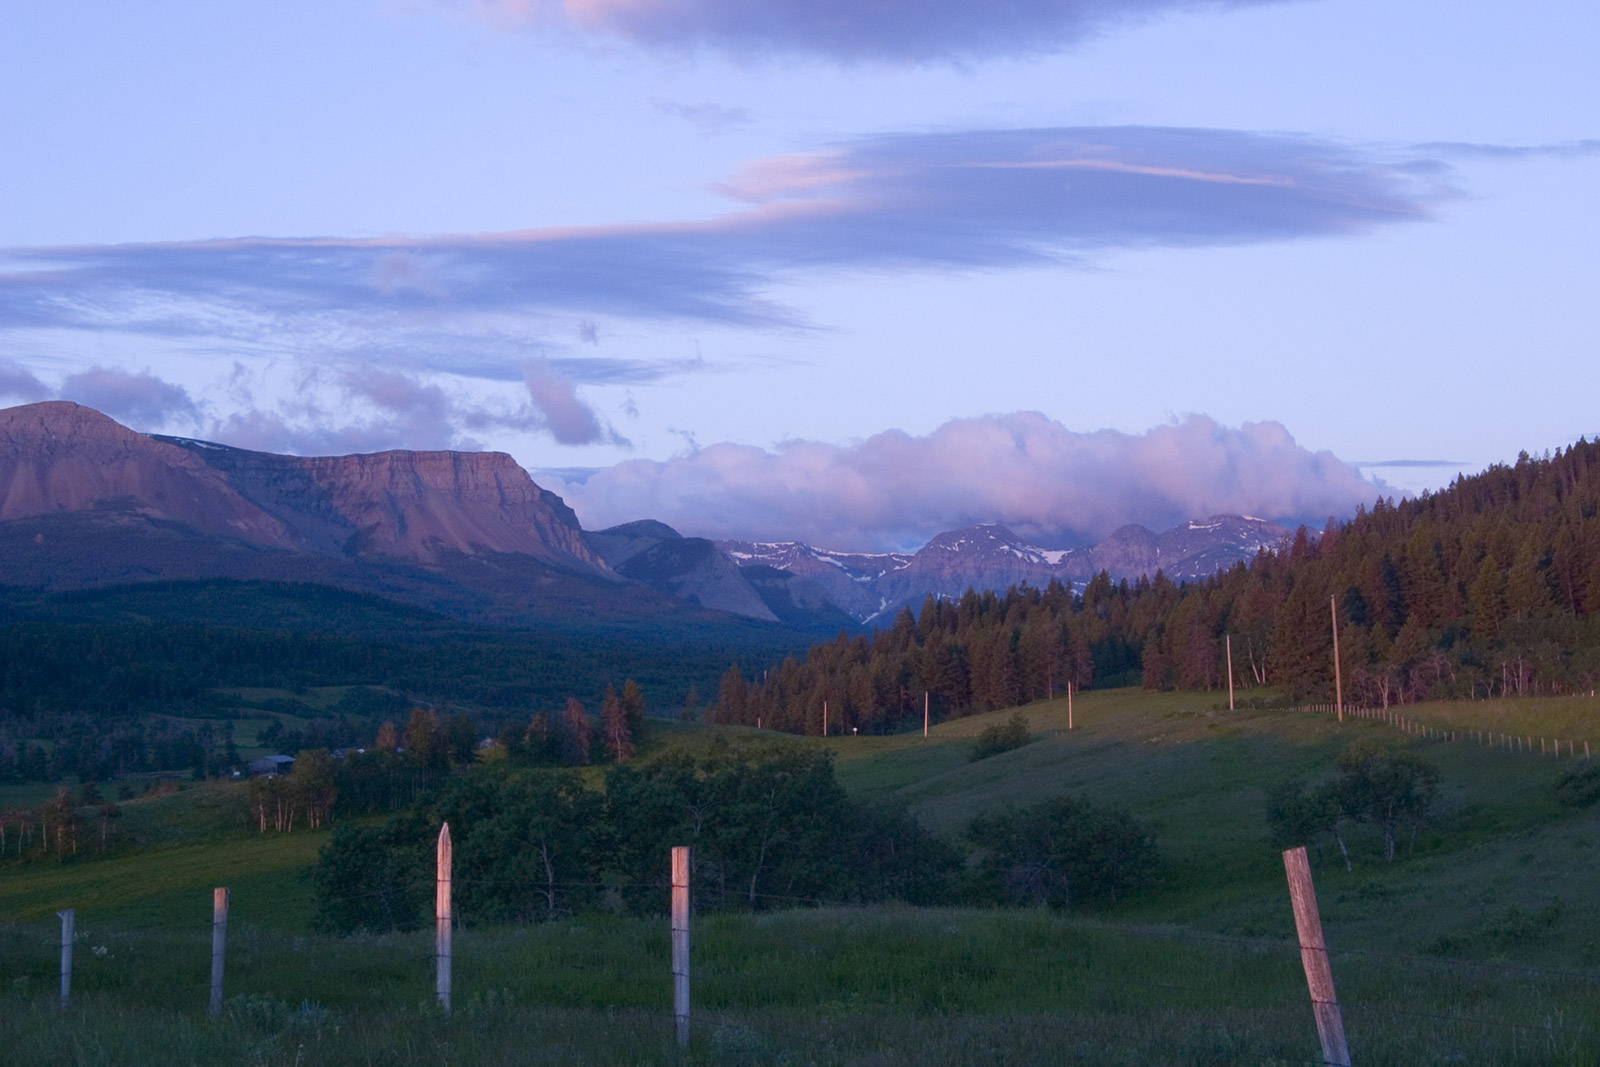 Alberta bed and breakfast near Crowsnest Pass